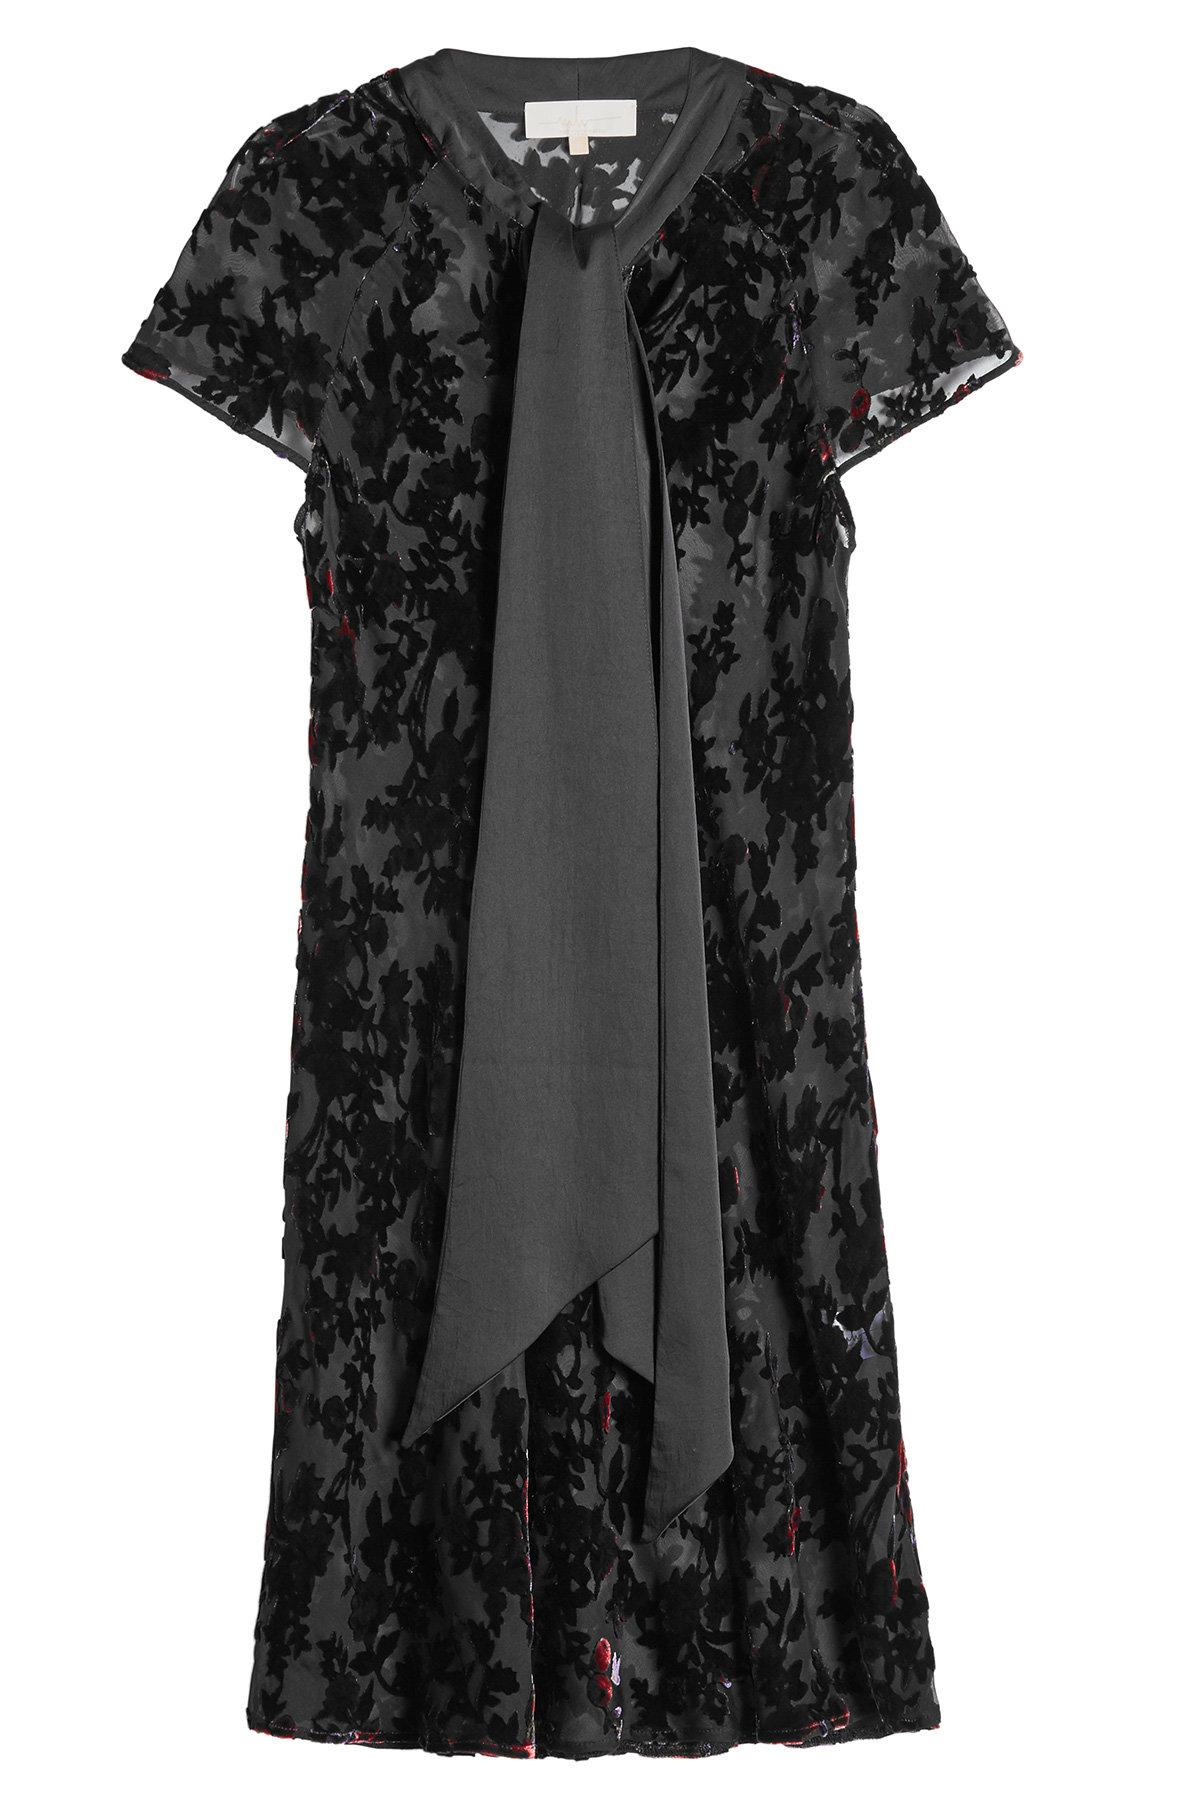 Marina Hoermanseder Dress With Silk And Velvet In Florals